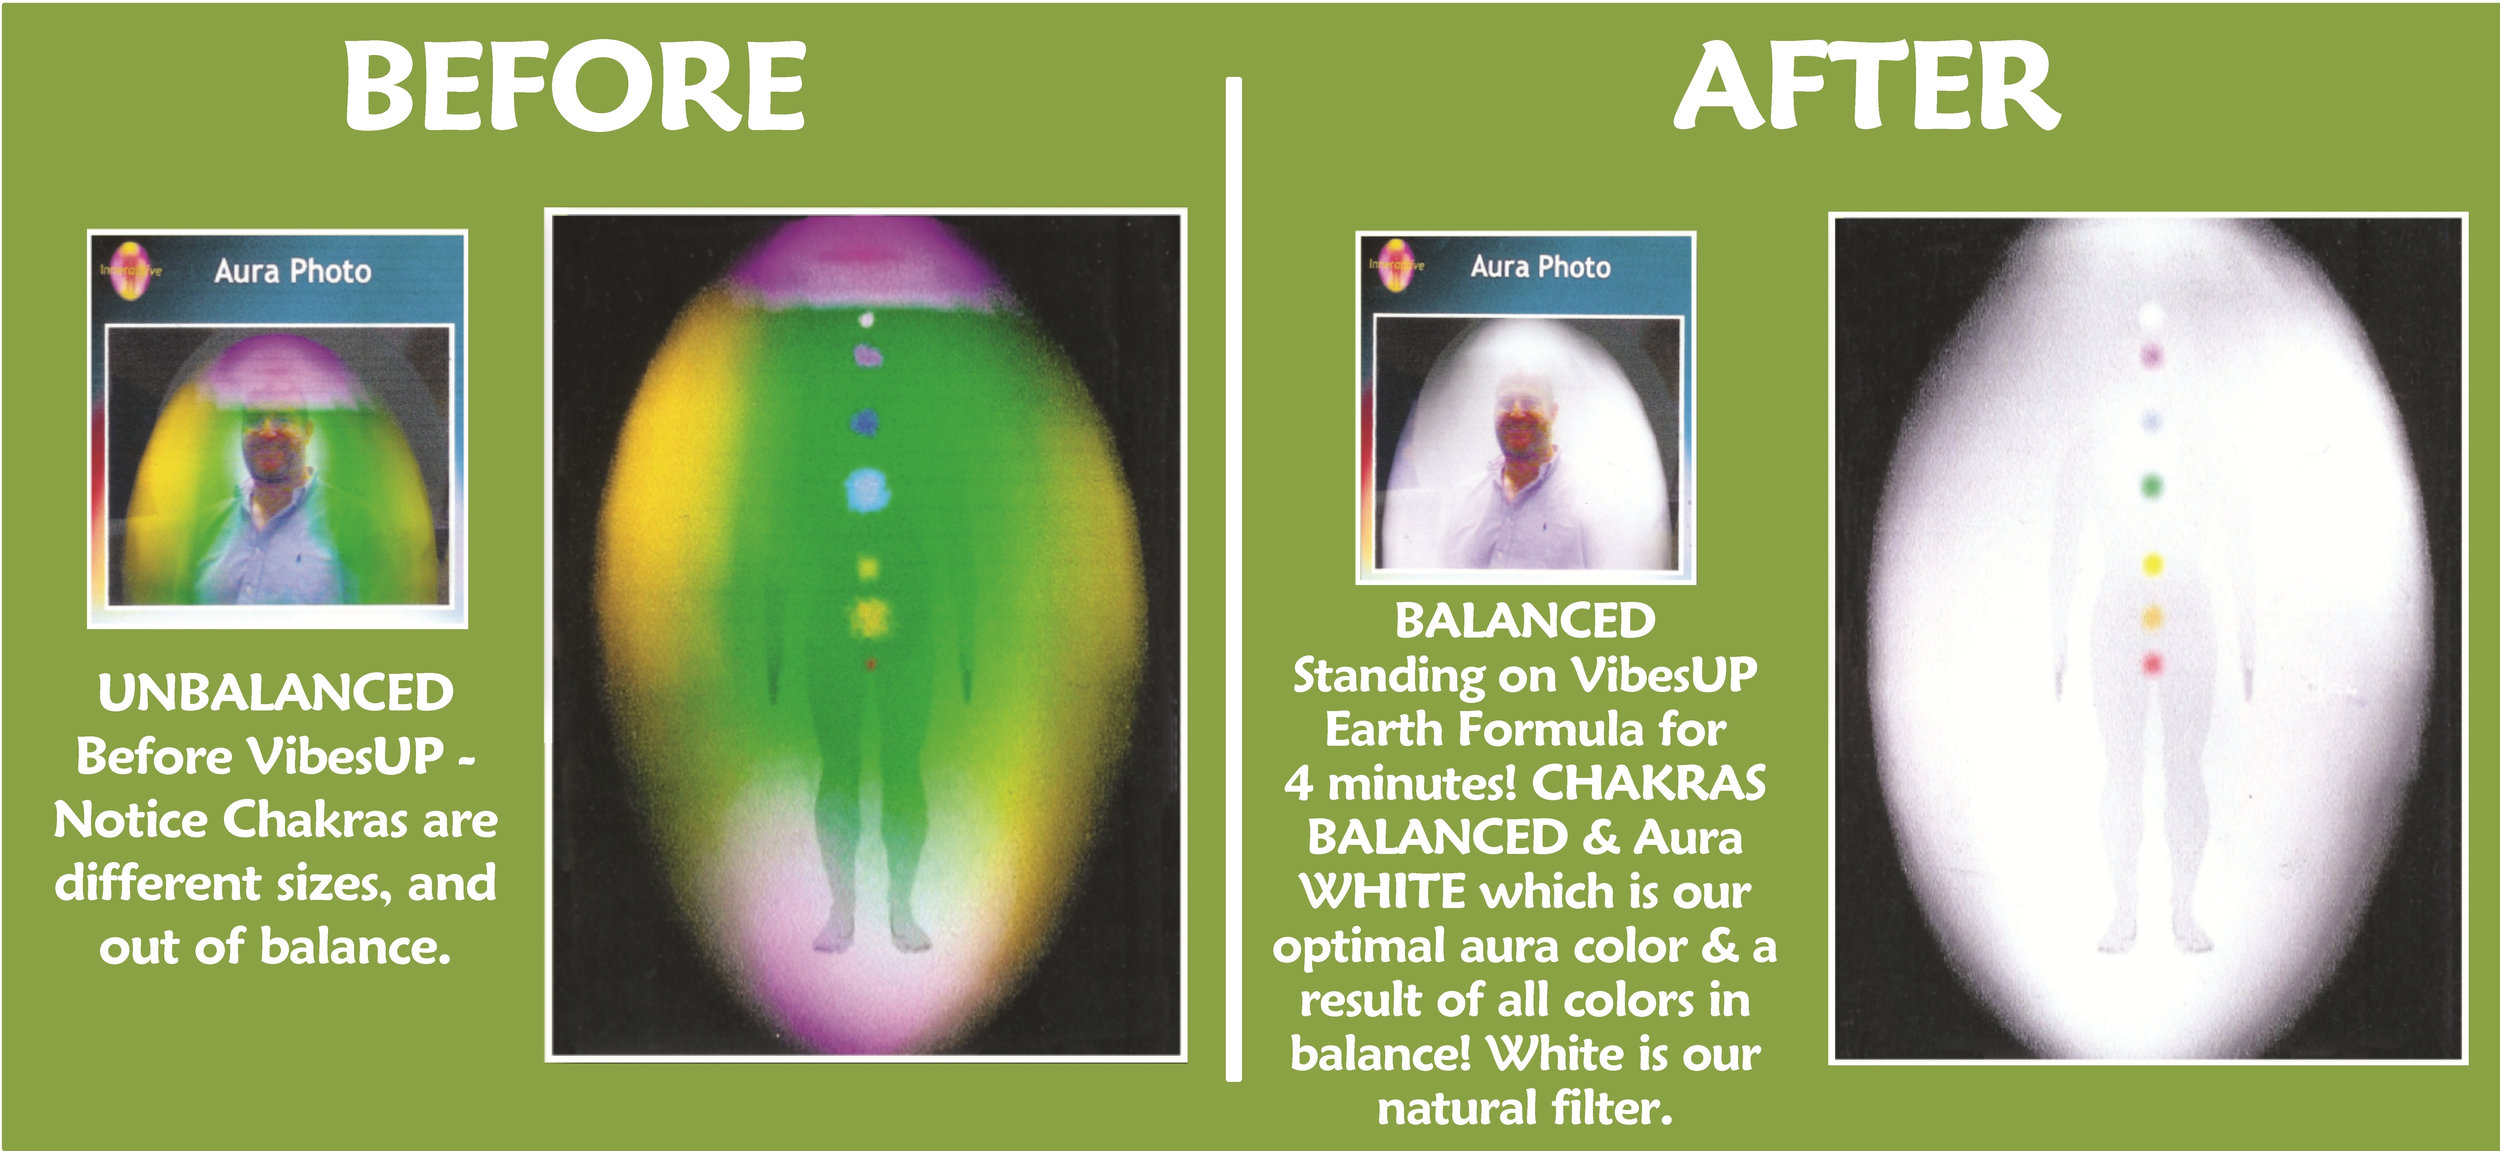 We were at a trade show and another booth had a special aura camera. We thought it would be fun to see what effects our Earth Energy has on the bottom of the Feet. Wow! were we pleasantly surprised!The balanced chakras with the beautiful white aura were a result of this man standing on the VibesUP earth material for 4 min